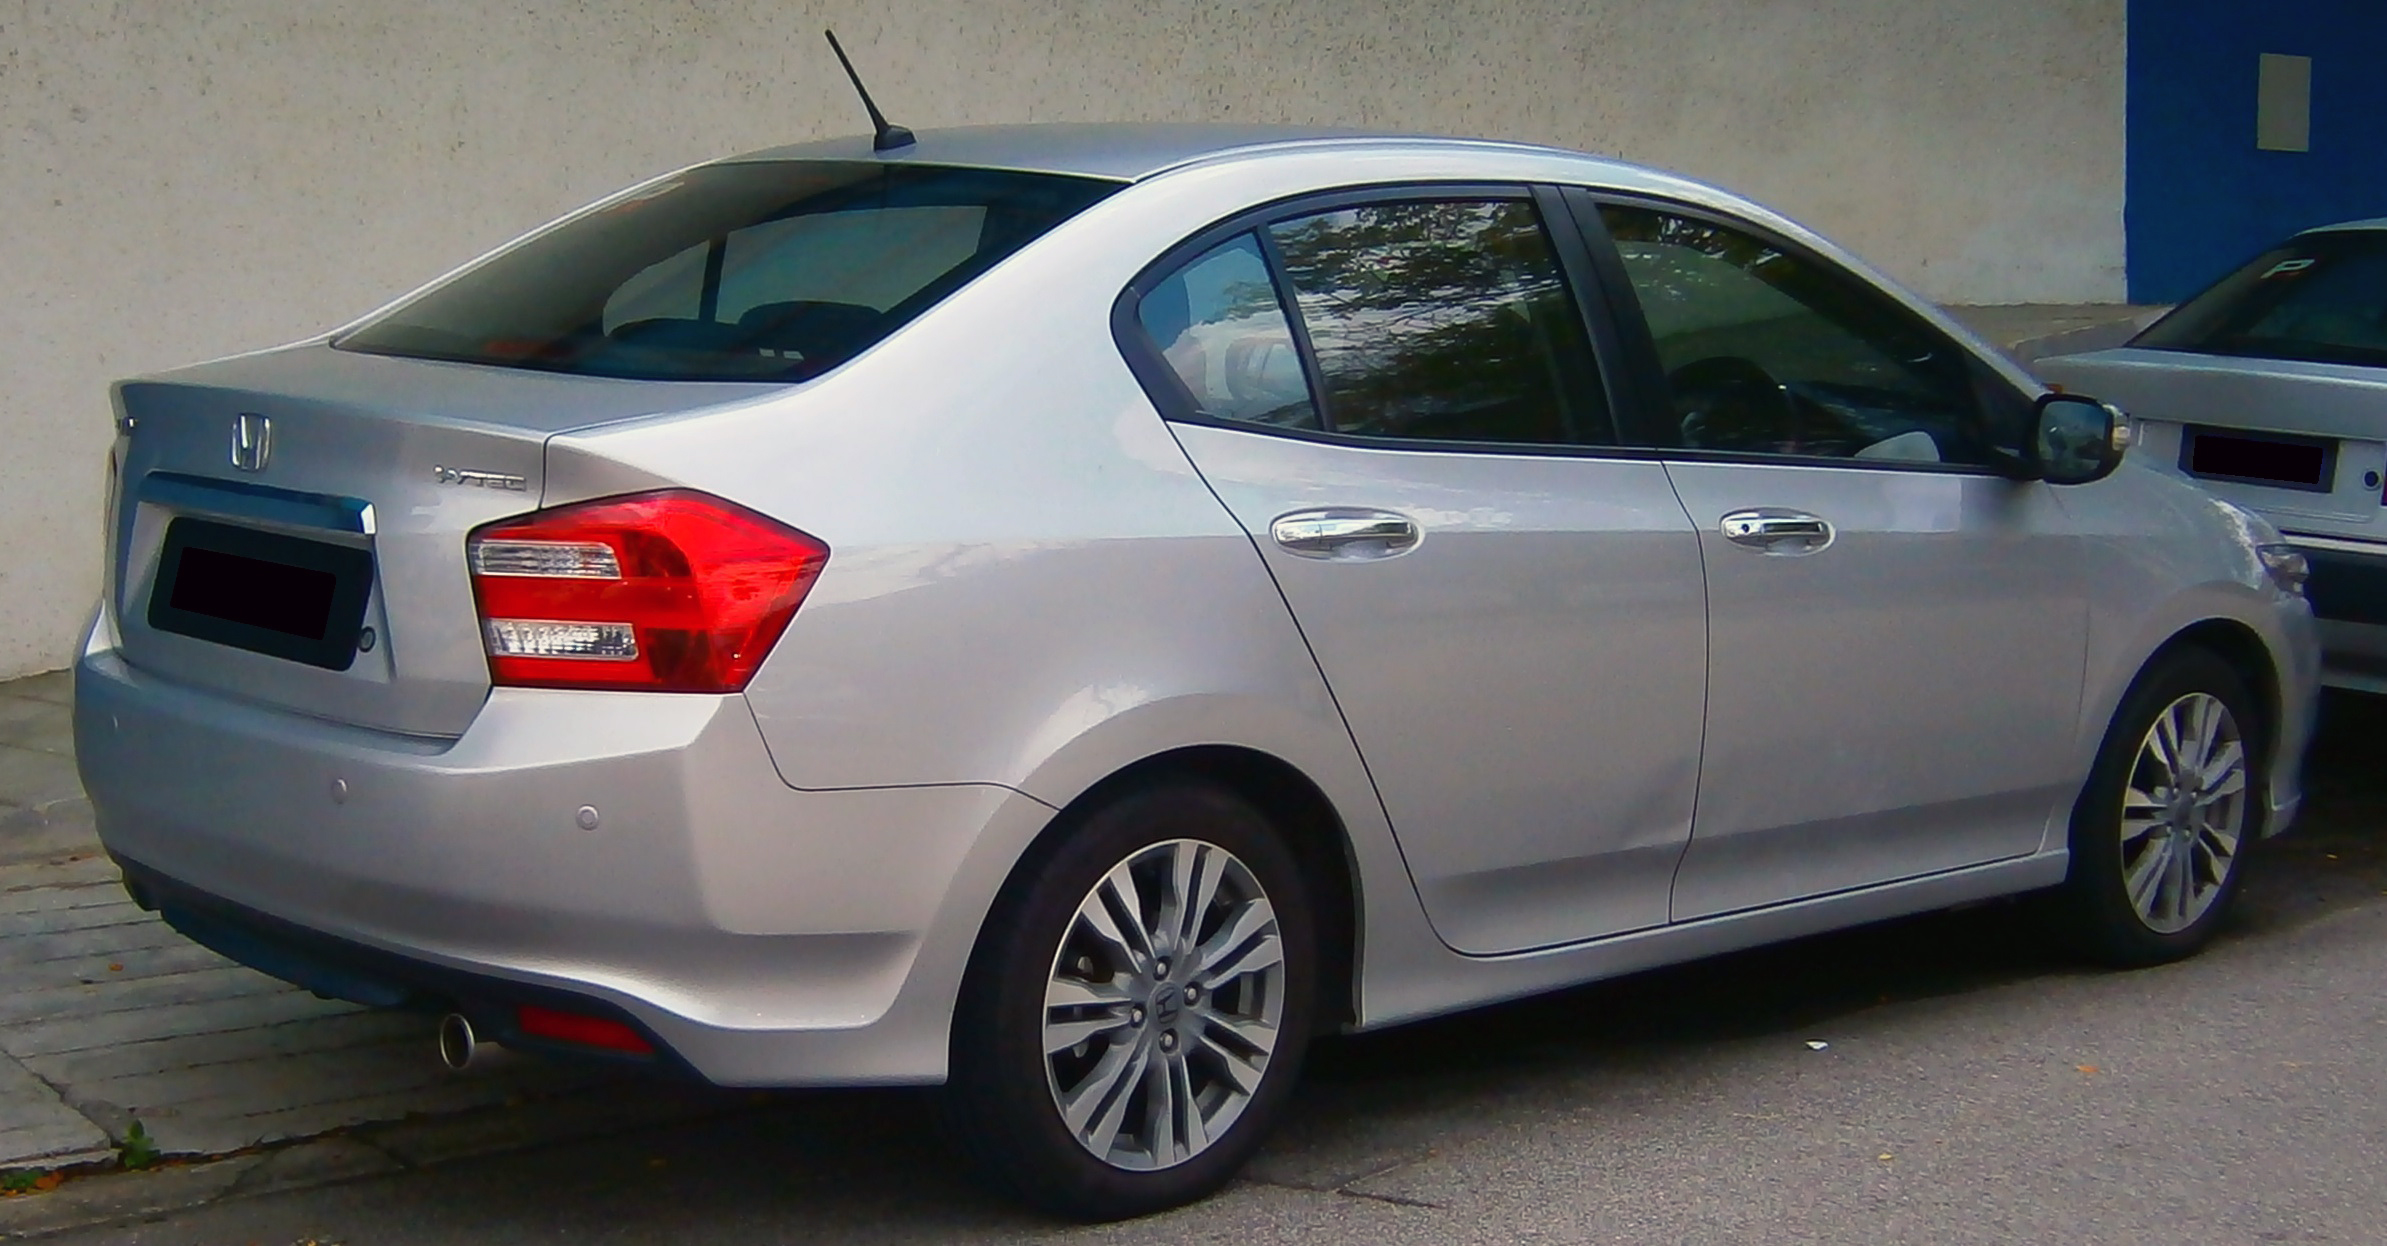 Honda City 2009 Exterior Rear Side View